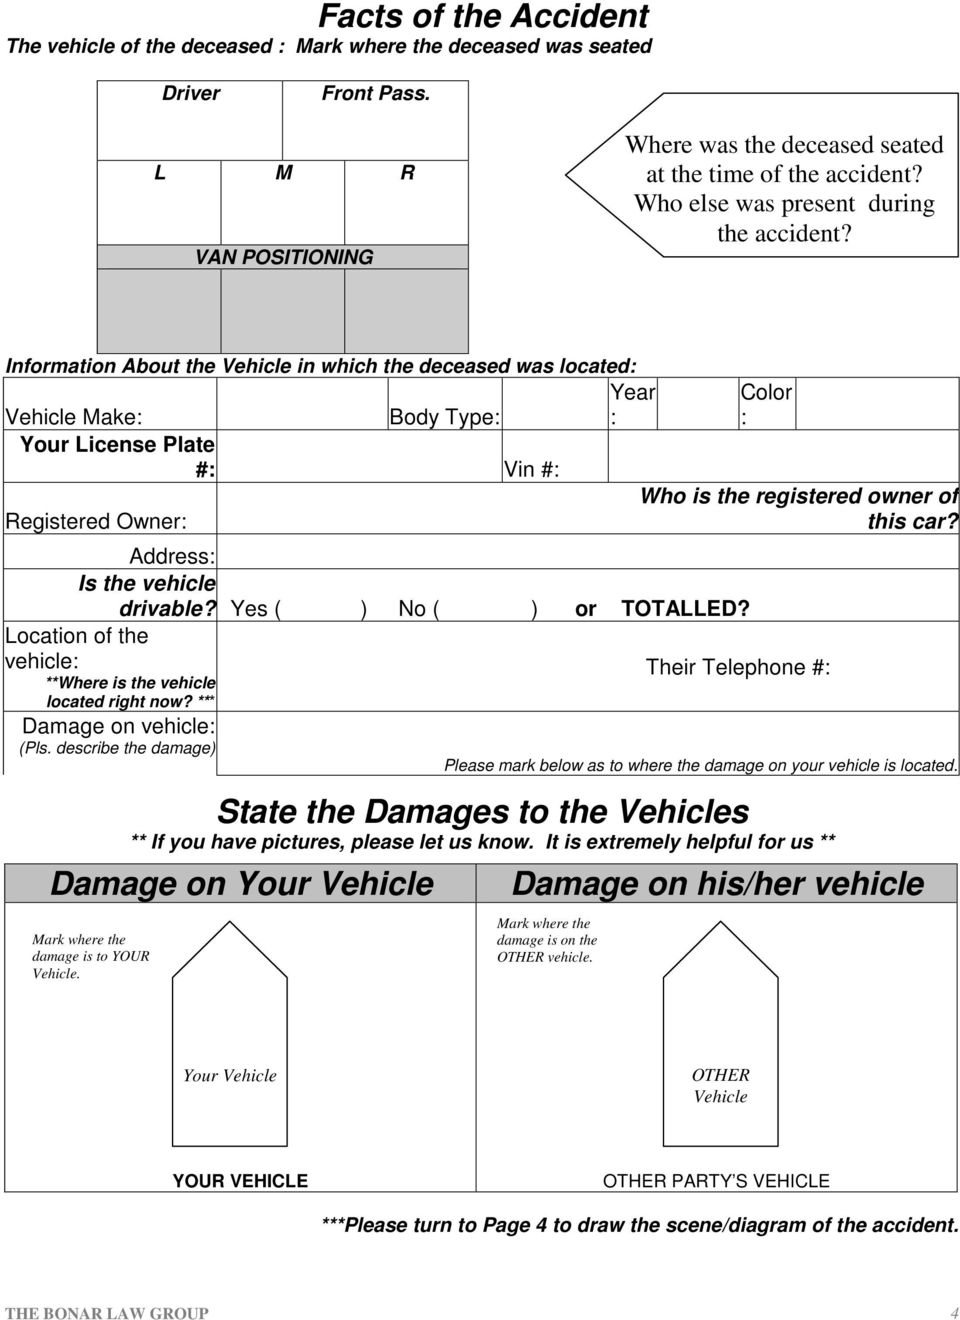 Information About the Vehicle in which the deceased was located: Vehicle Make: Body Type: Your License Plate #: Vin #: Registered Owner: Year : 5 Is the vehicle drivable? Yes ( ) No ( ) or TOTALLED?